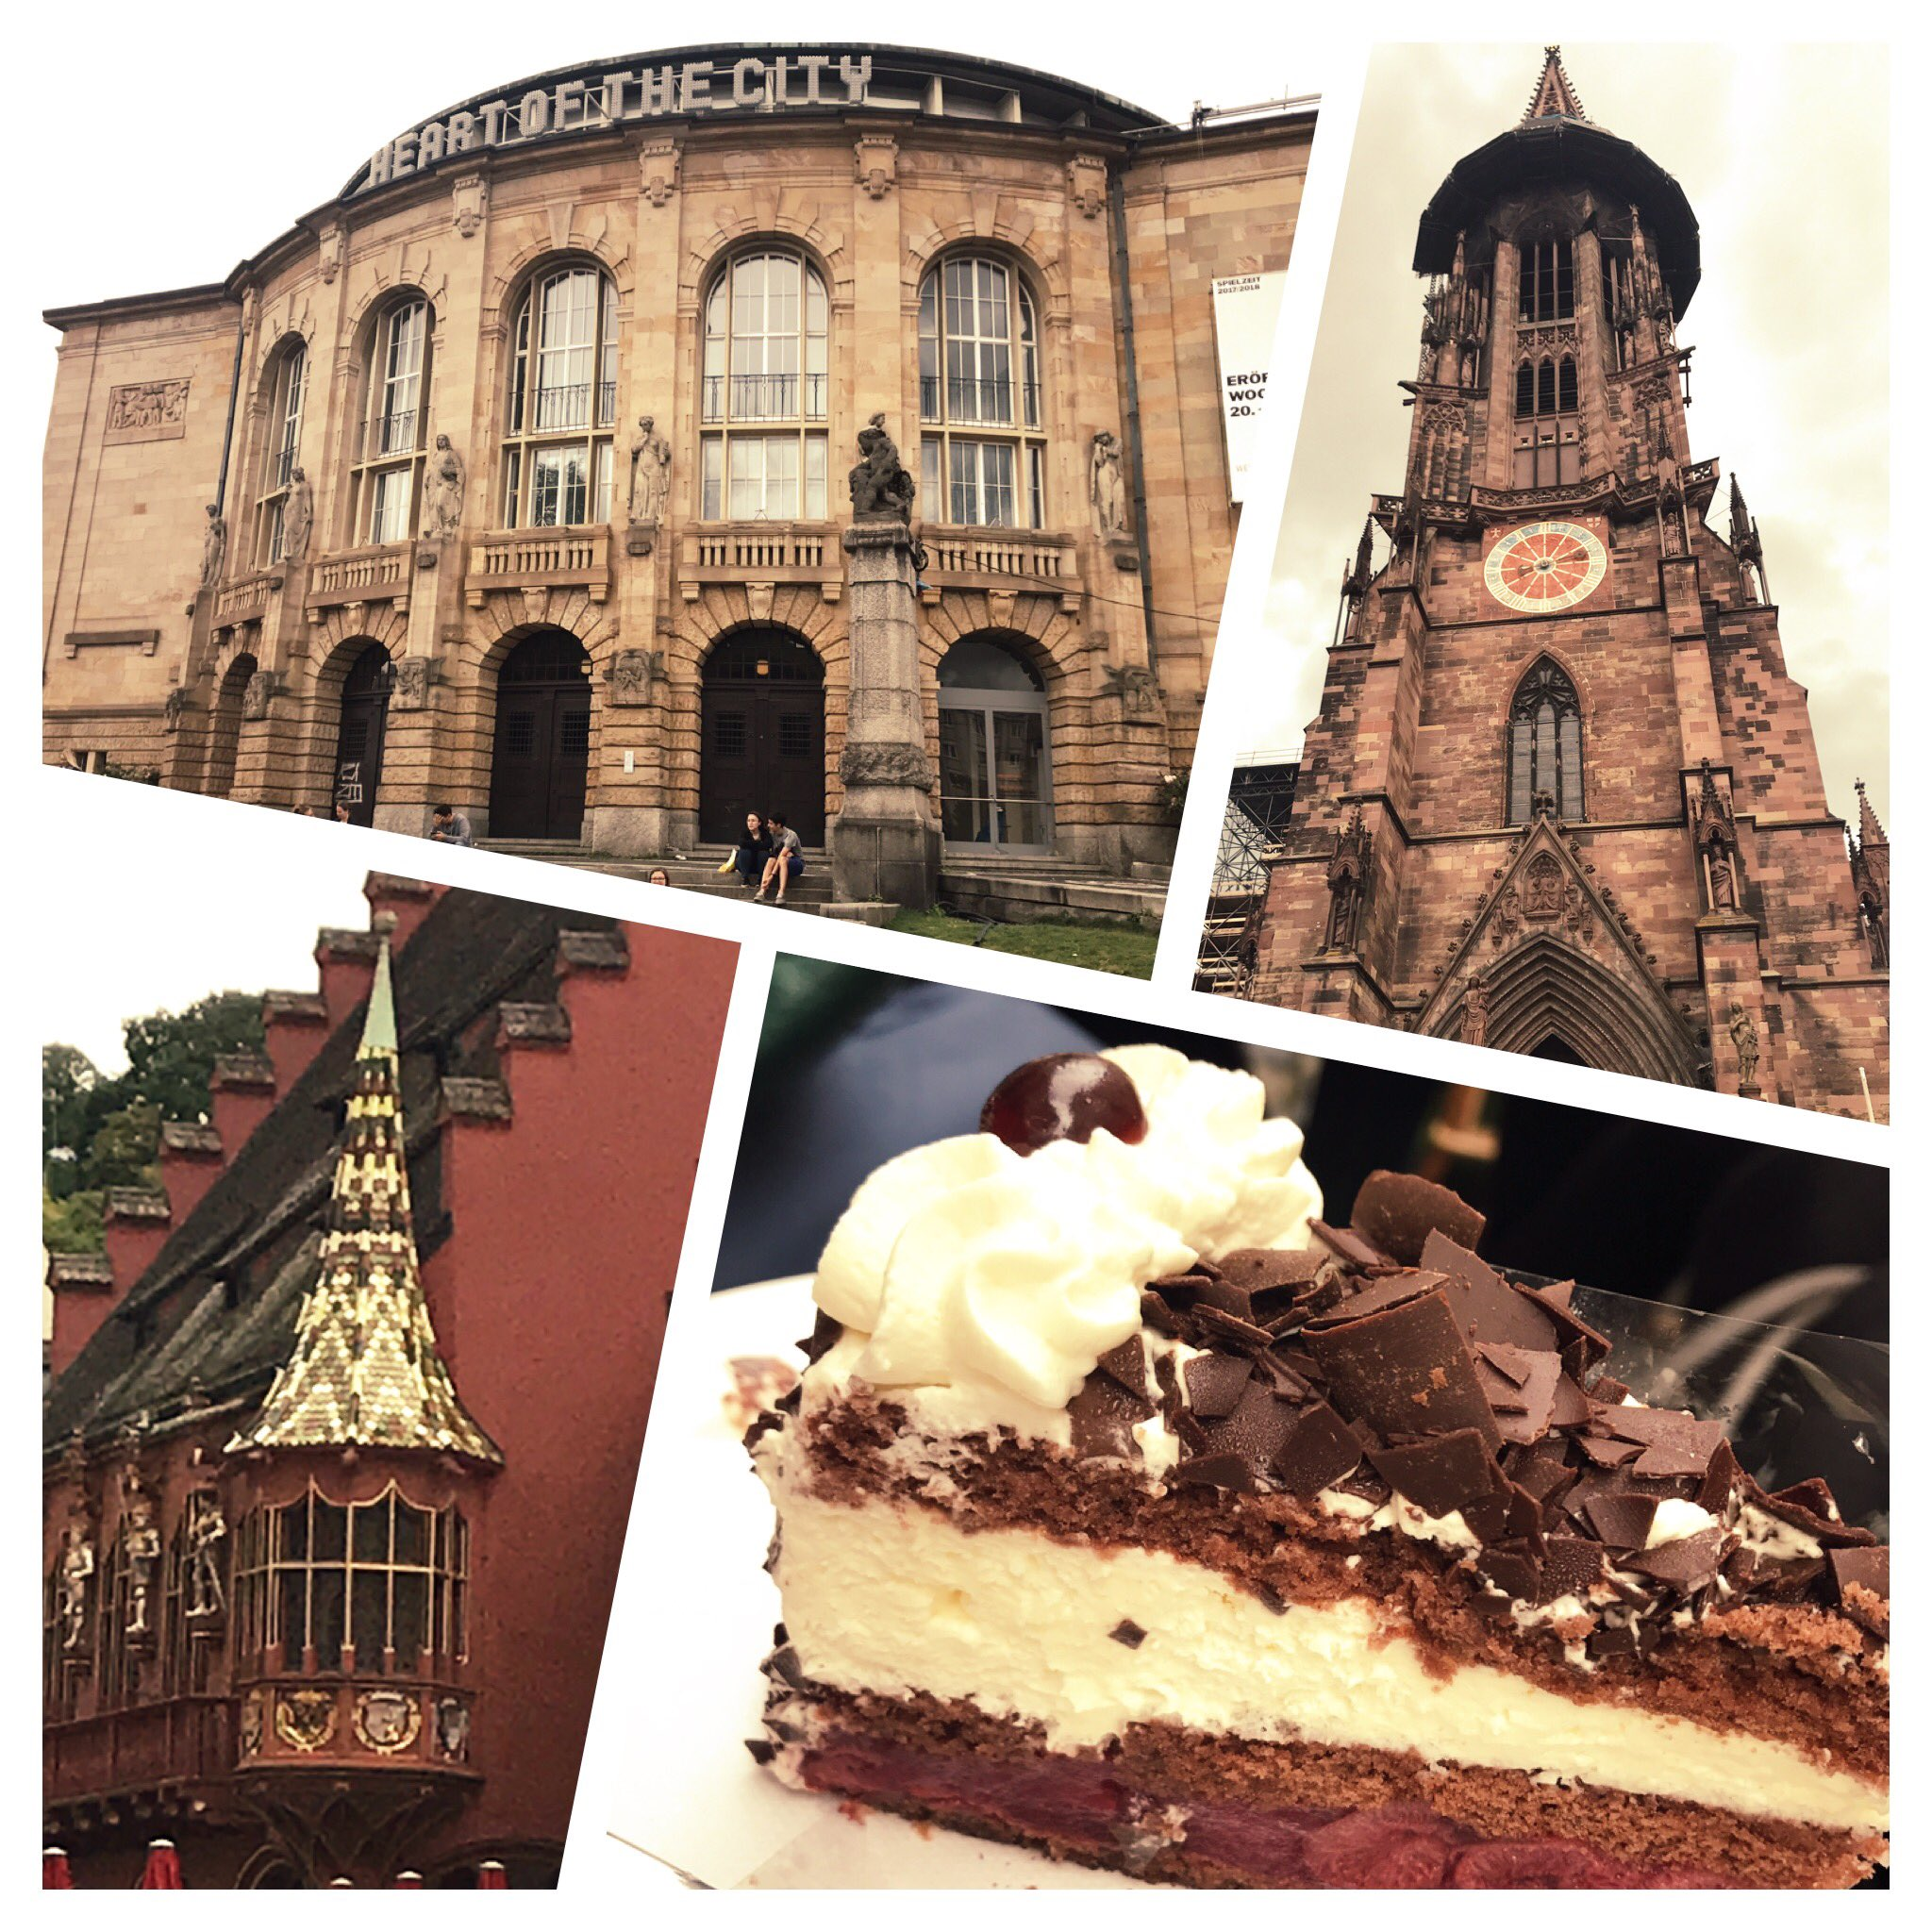 Delicious Black Forest Gateau to refuel after a walking tour of Freiburg. Great way to start #rsvp17 https://t.co/460GDFNjQV